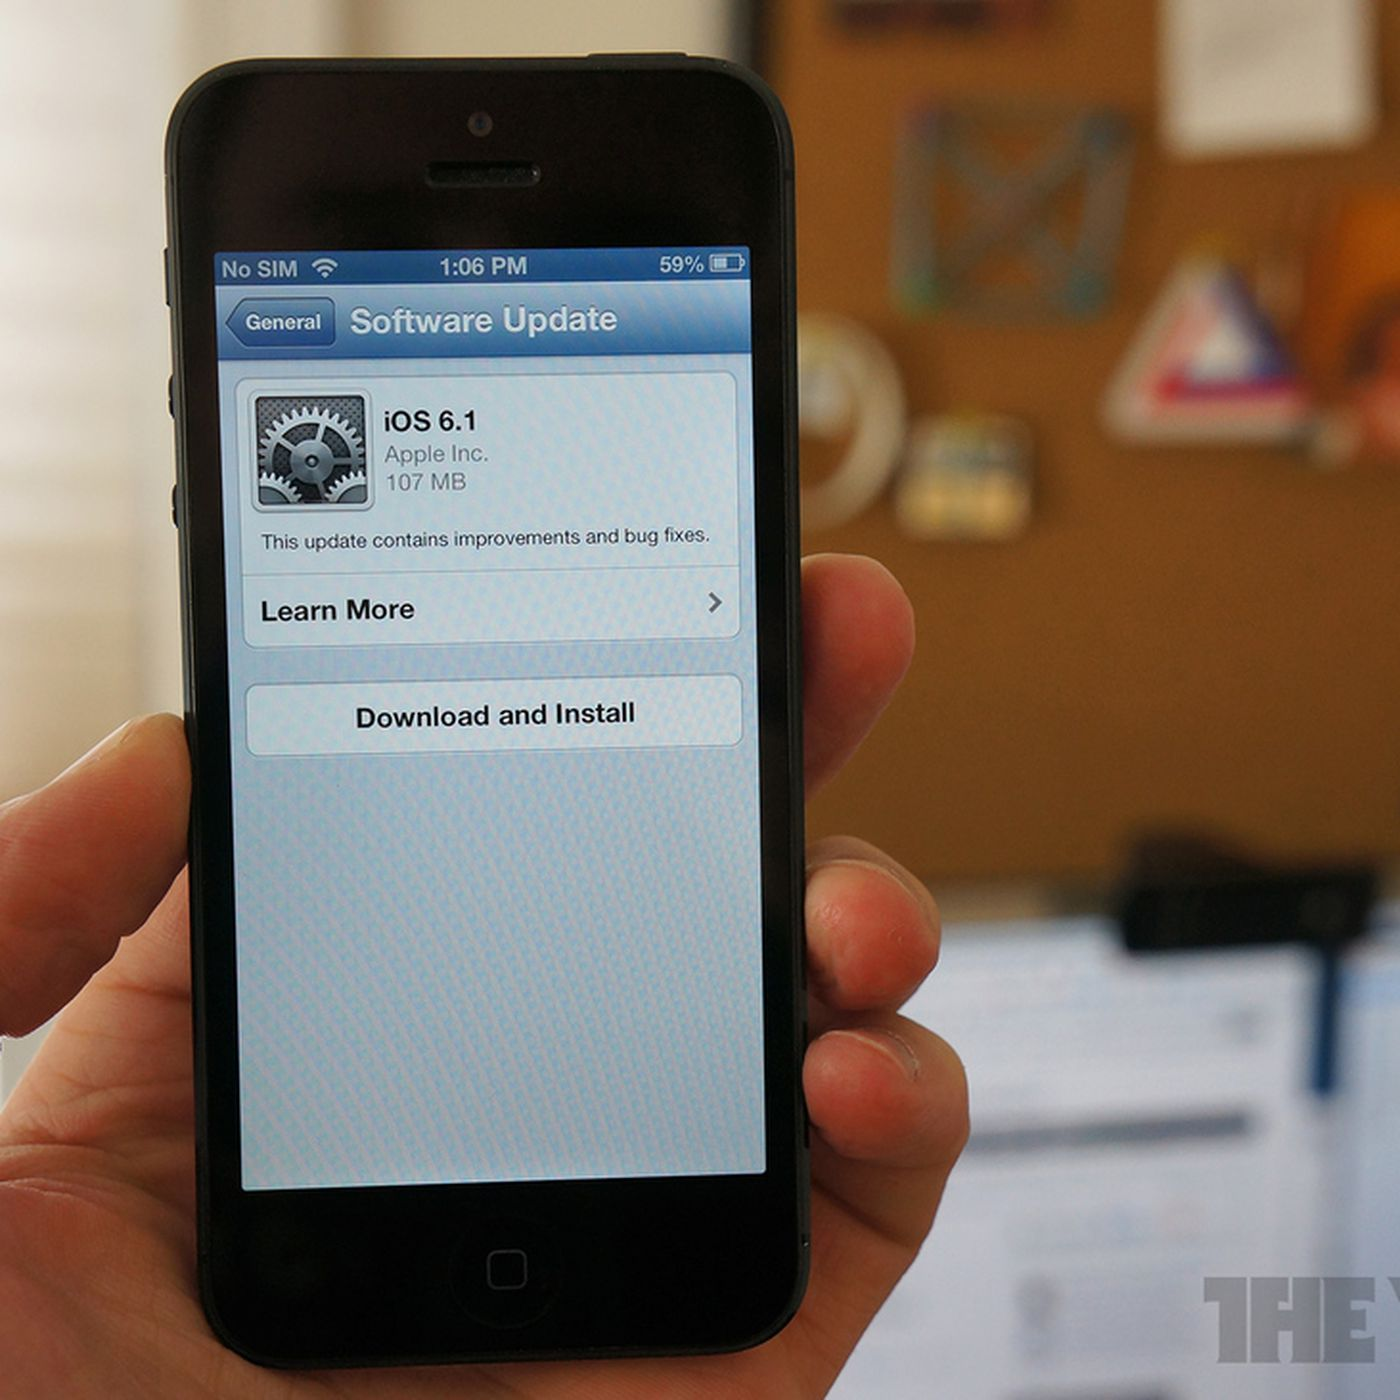 Vodafone tells iPhone 4S customers to hold off on iOS 6 1